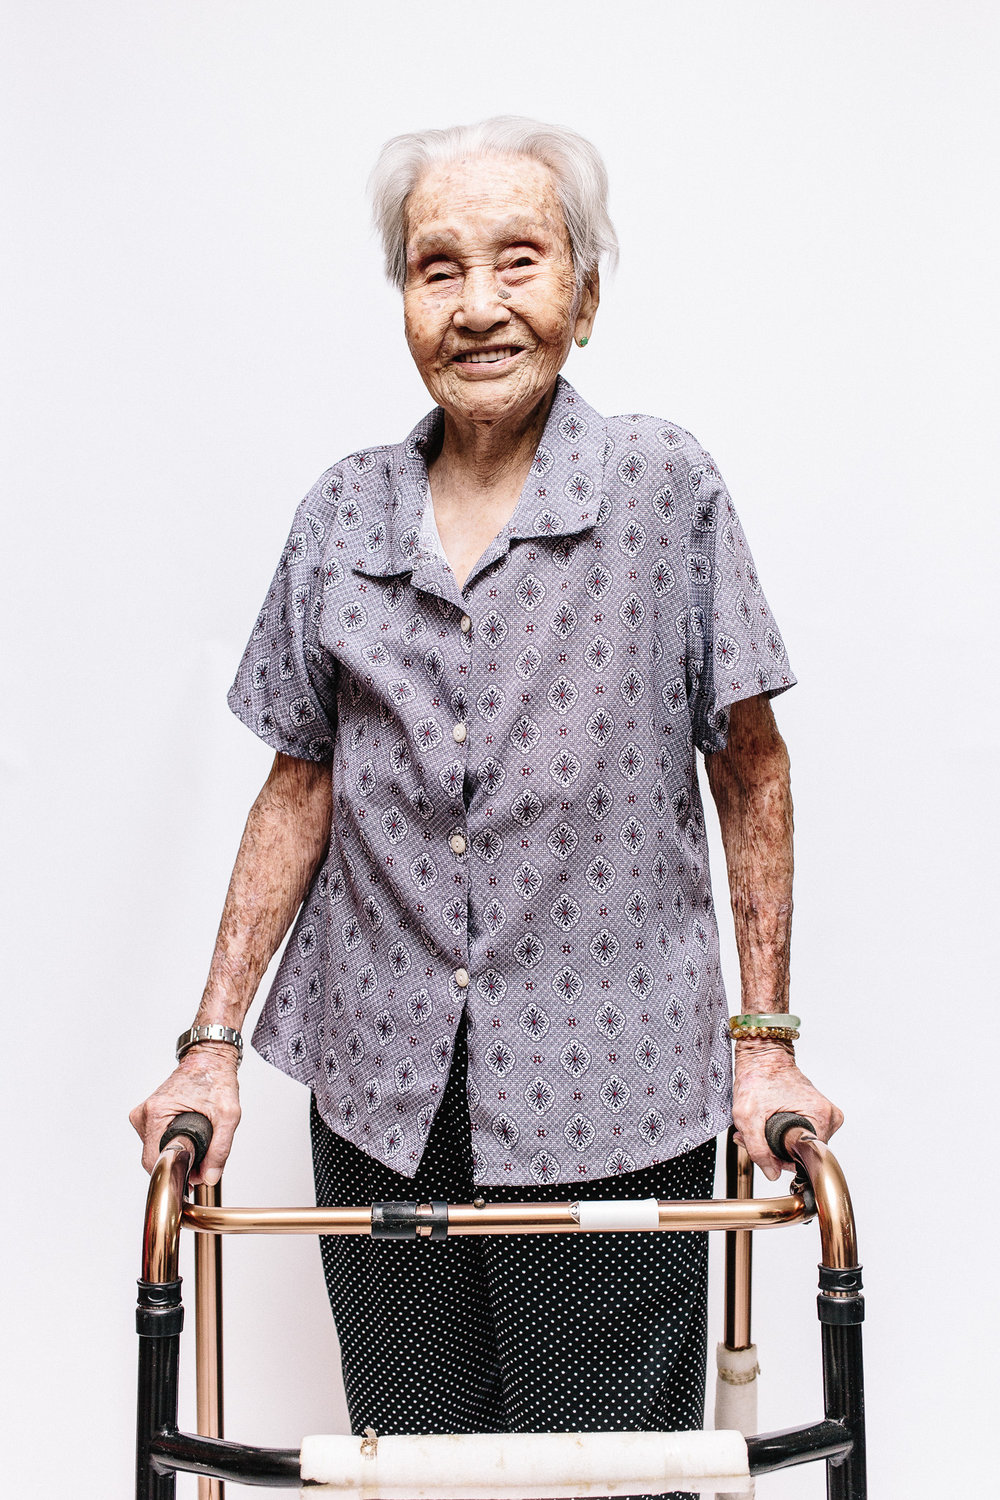 zainal-zainal-studio-centenarians-care-duke-nus-singapore-photographer-20.jpg